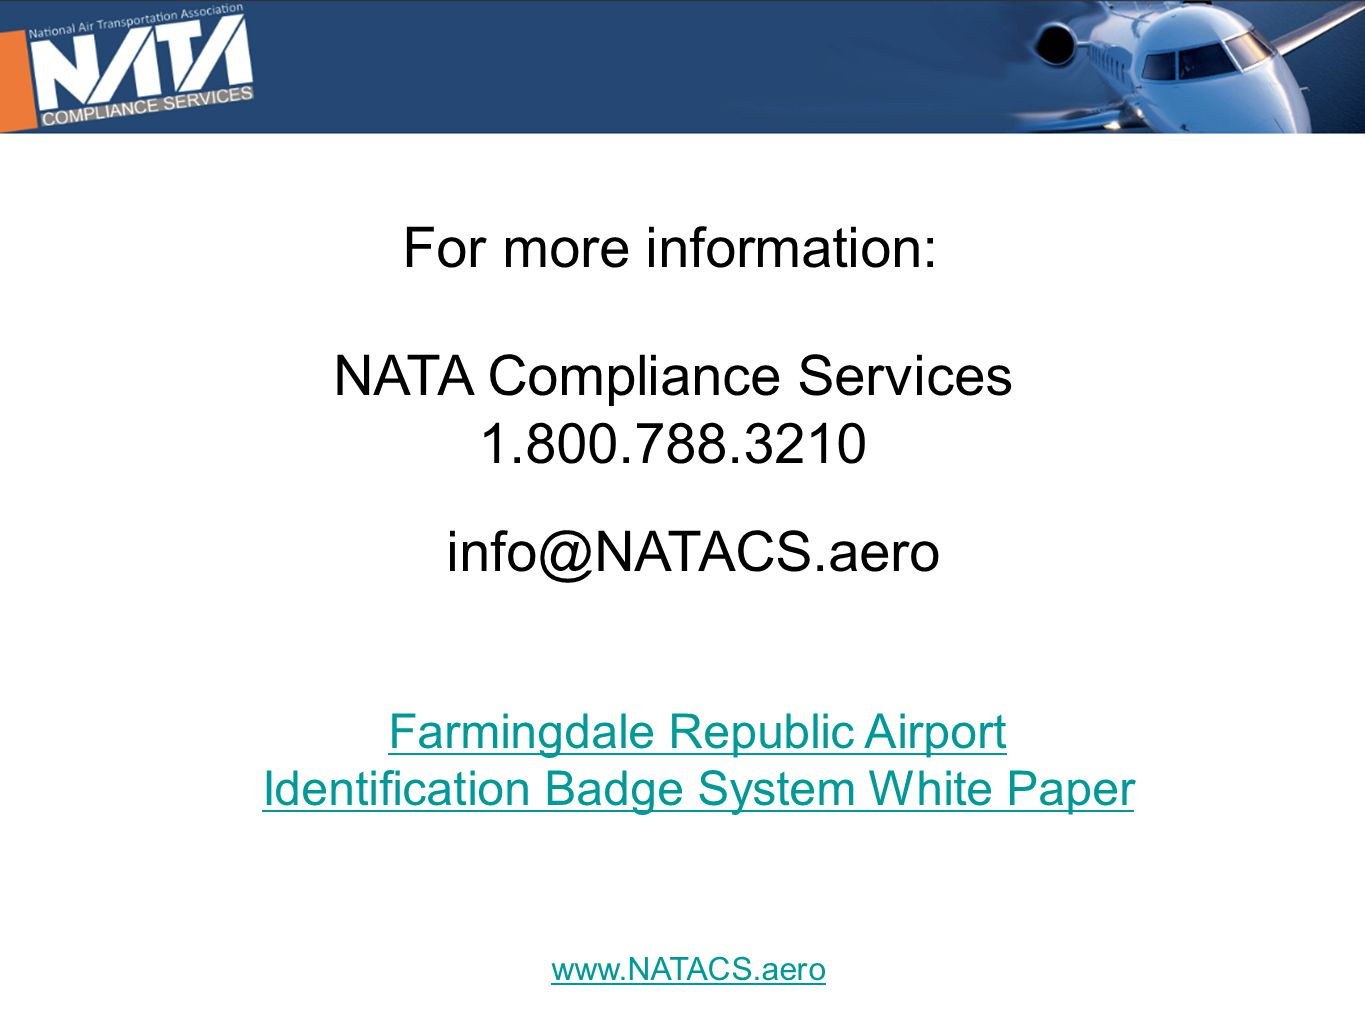 www.NATACS.aero For more information: NATA Compliance Services 1.800.788.3210 info@NATACS.aero Farmingdale Republic Airport Identification Badge System White Paper